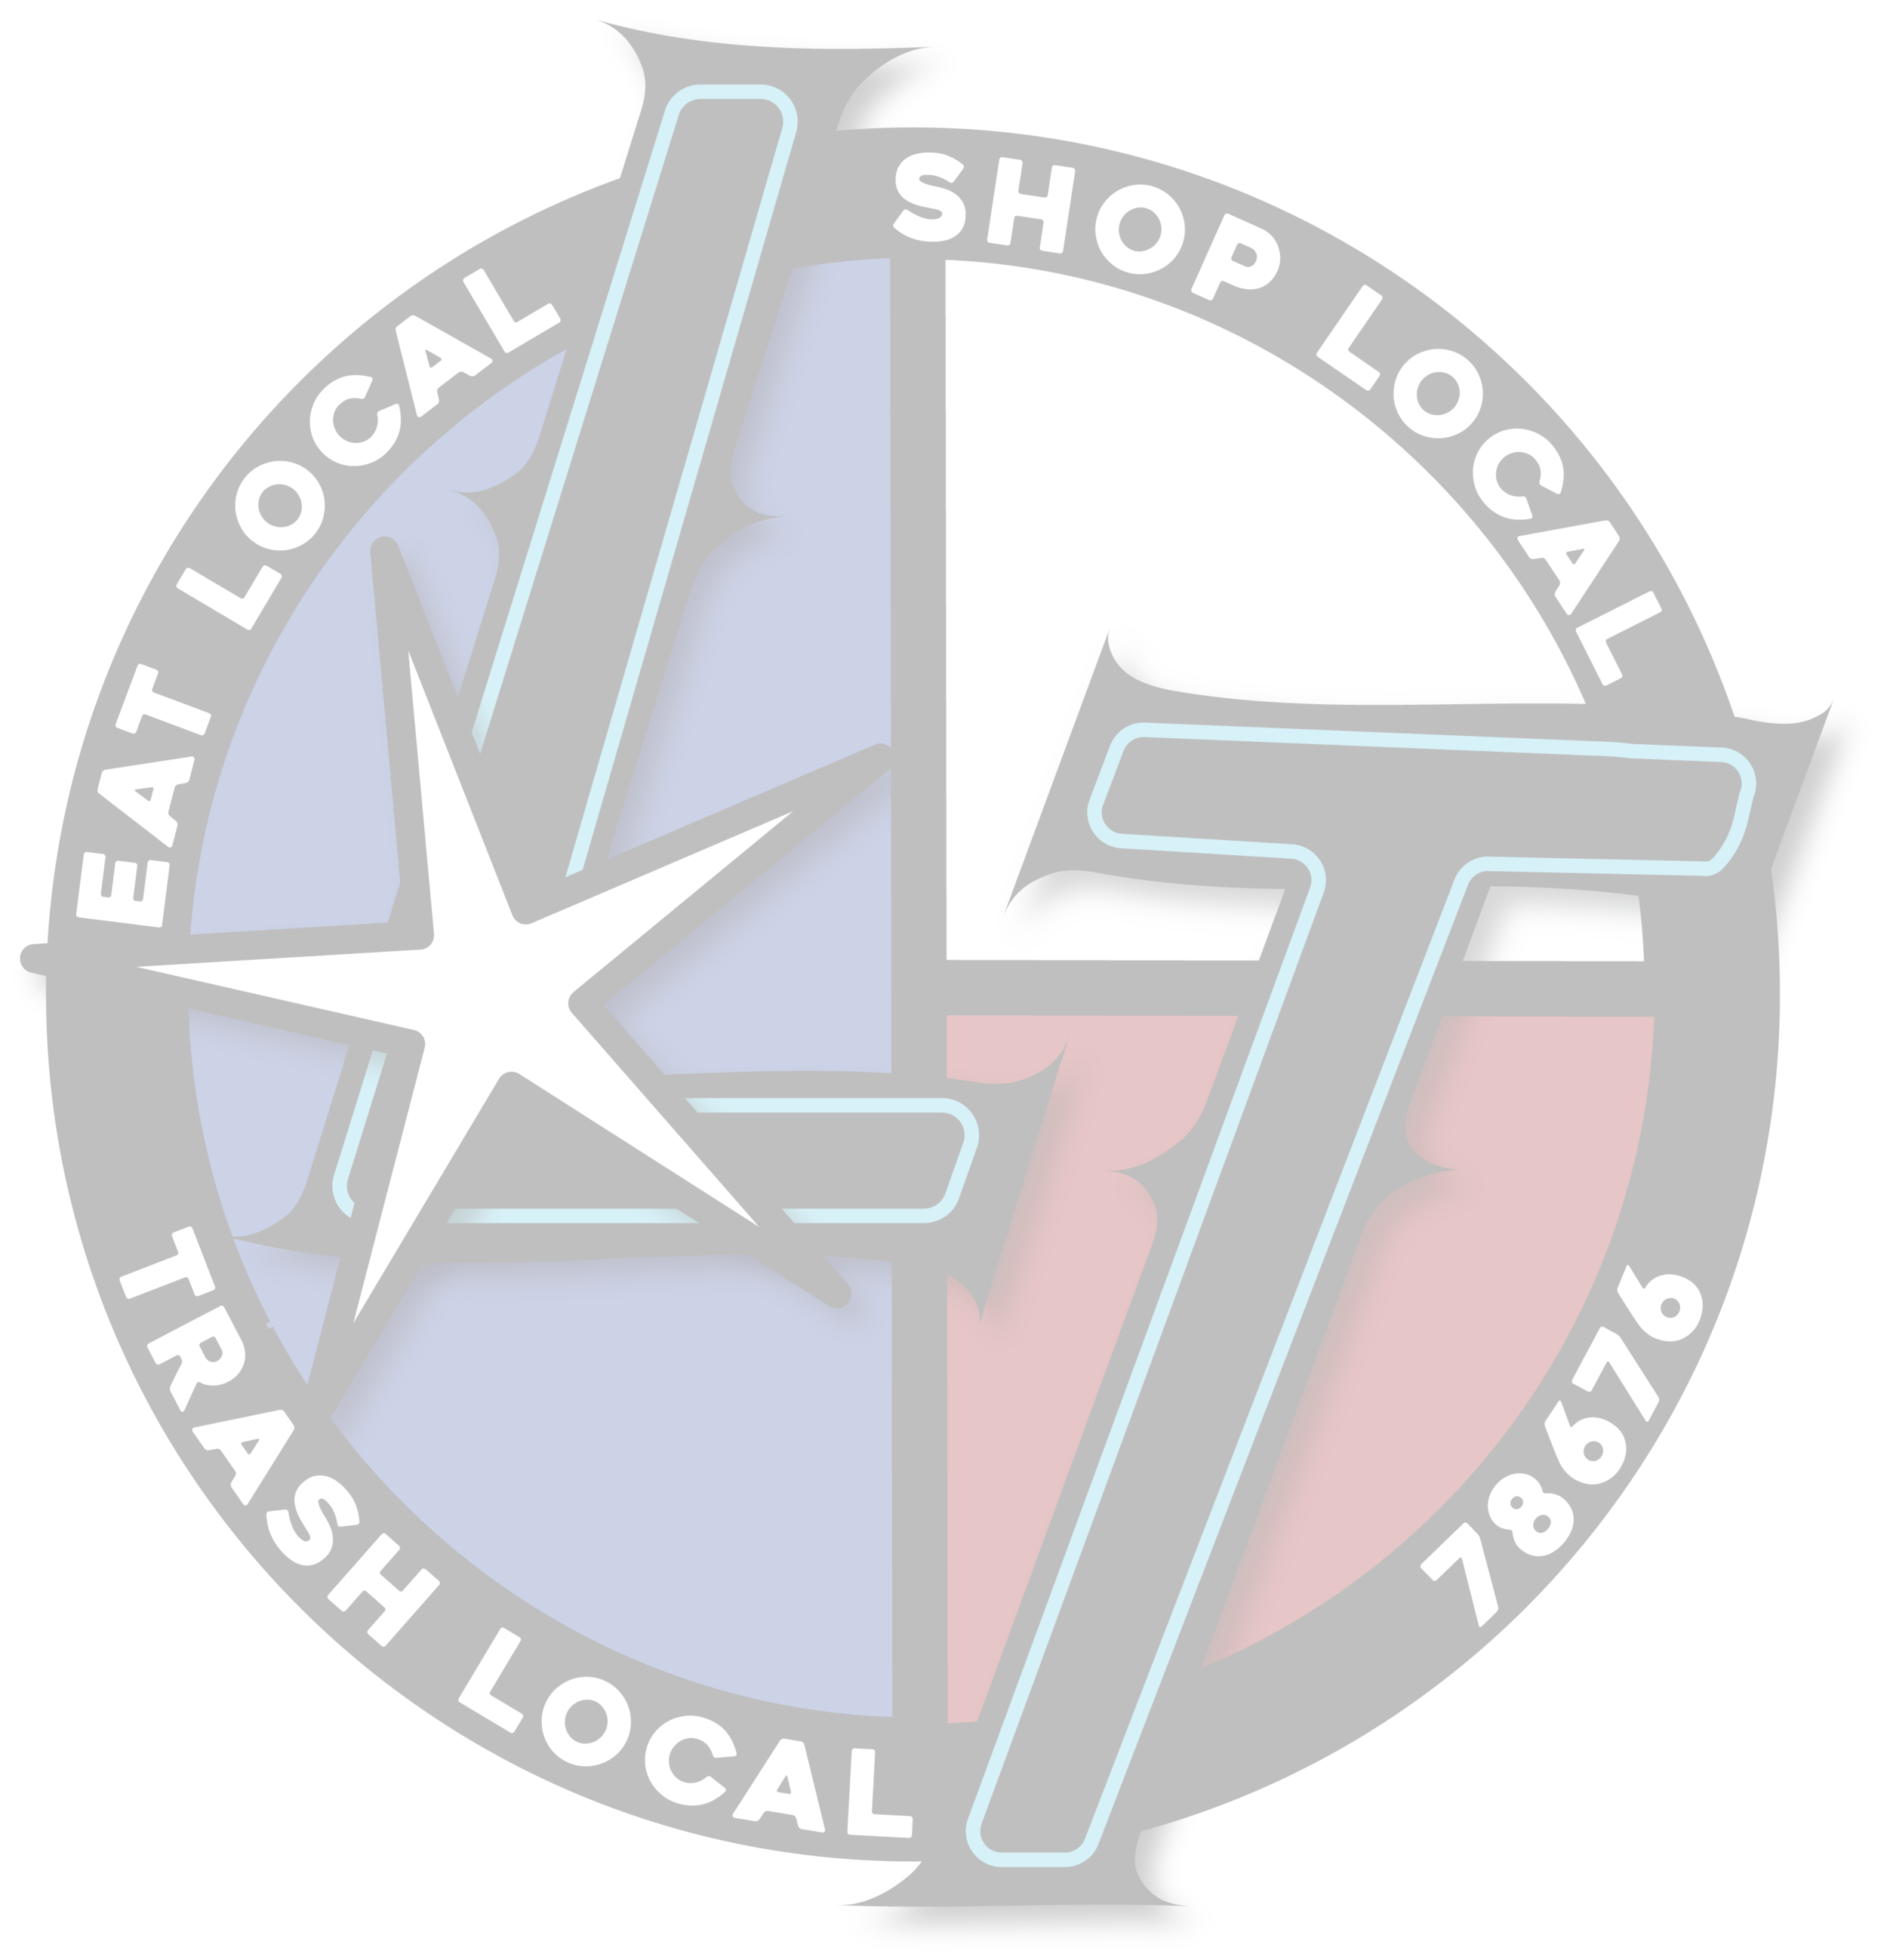 We Live Here. - At Local Trash we truly are local. We are a family owned business and Wimberley has our hearts. We live here, play here, eat here, shop here and we work here.